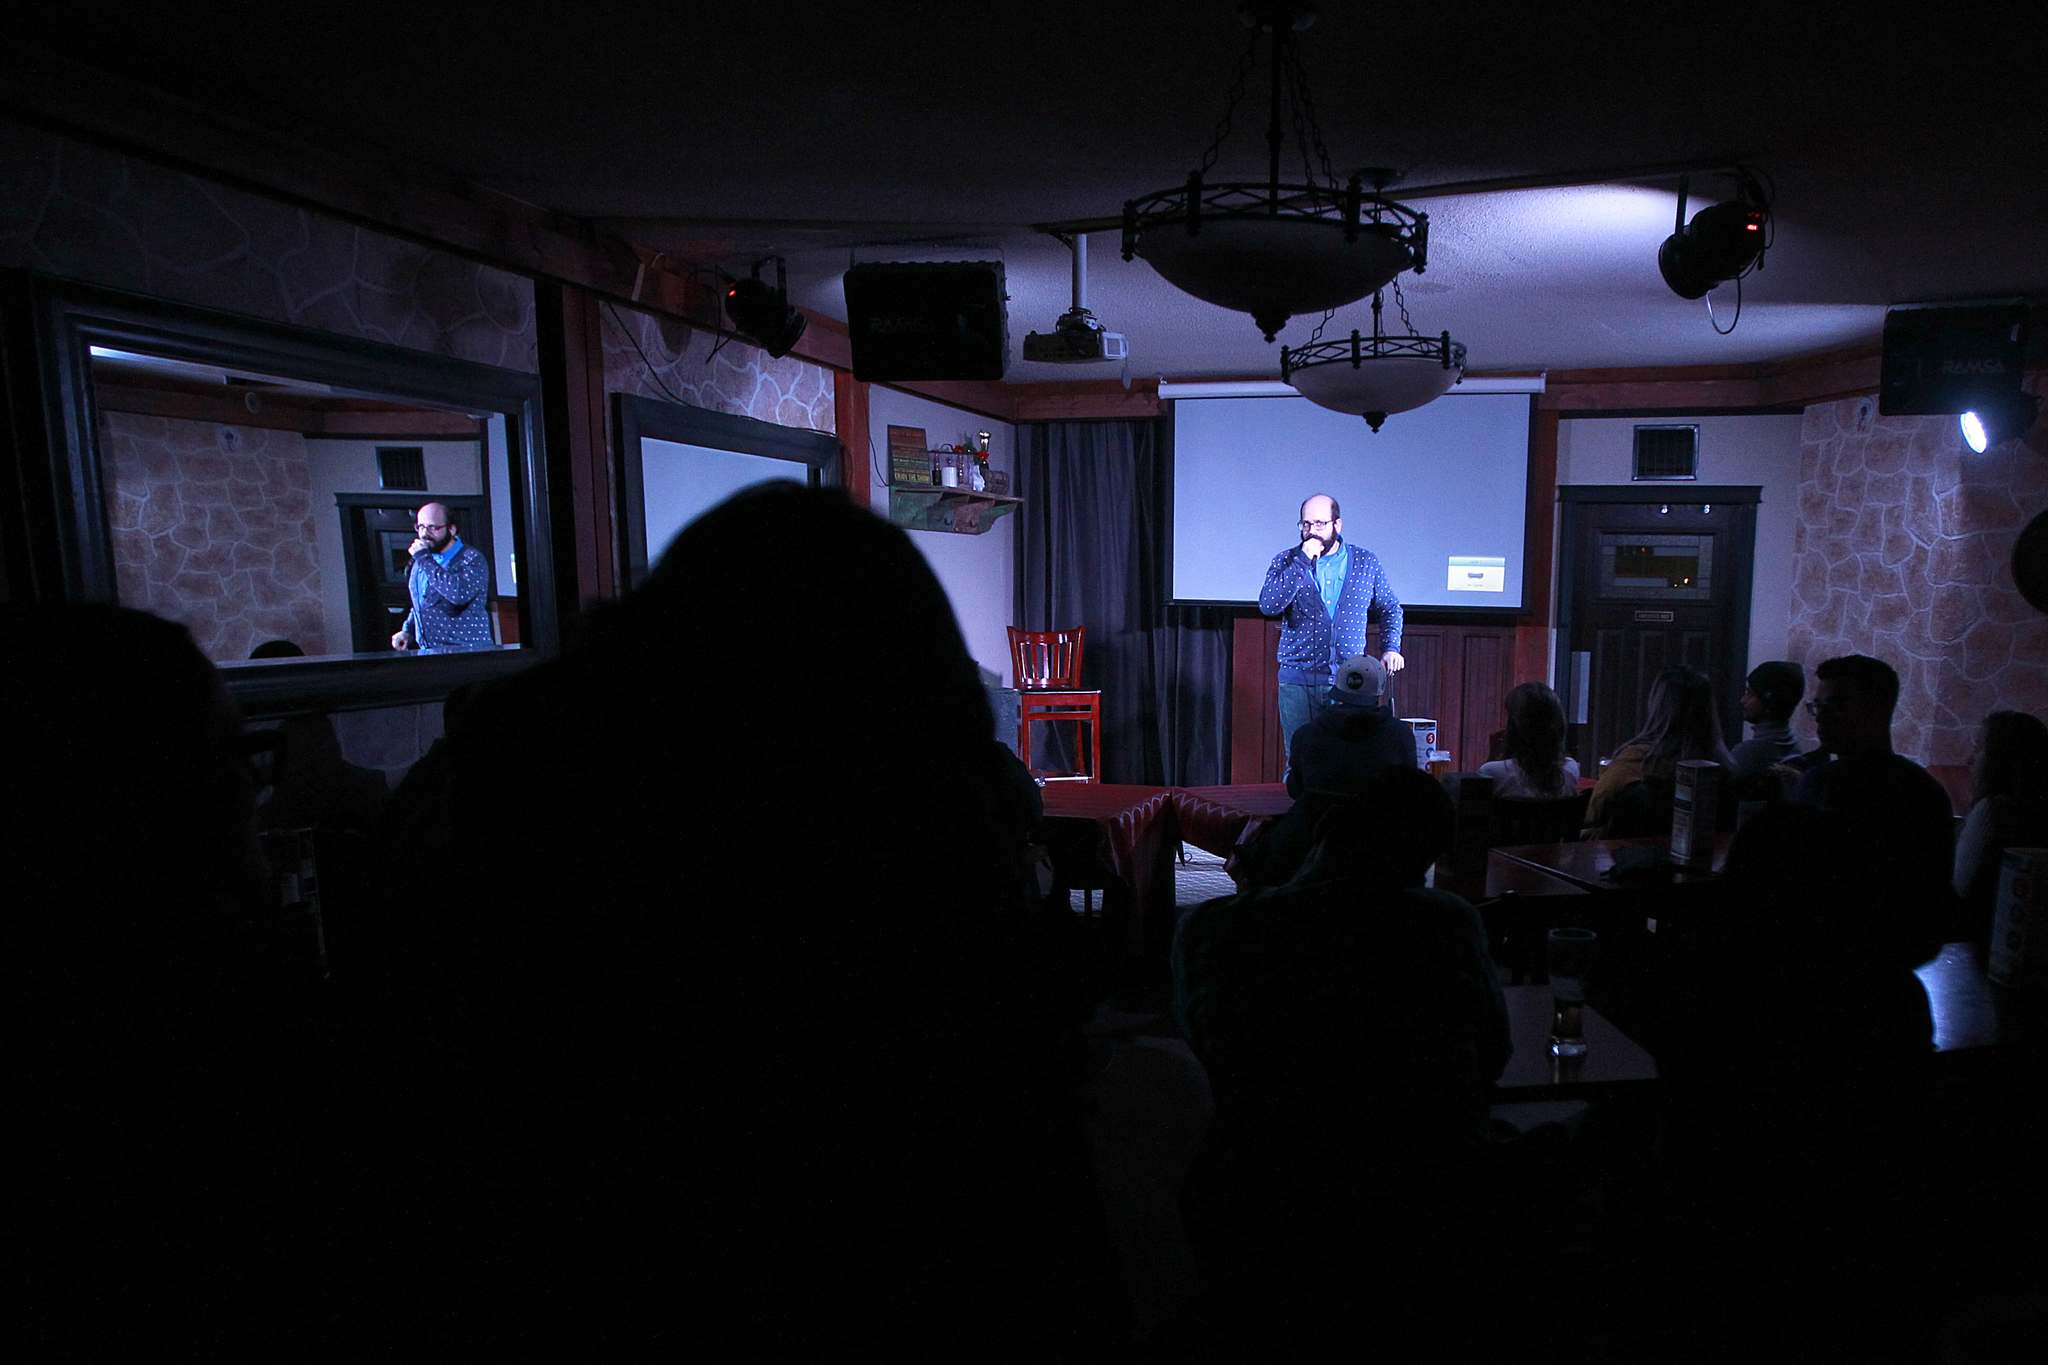 PHIL HOSSACK / WINNIPEG FREE PRESS</p><p>Comedian Dan Goldberg takes the stage at Wee Johnny's comedy club, which is in the basemnet of Johnny G's on McDermot Avenue.</p>